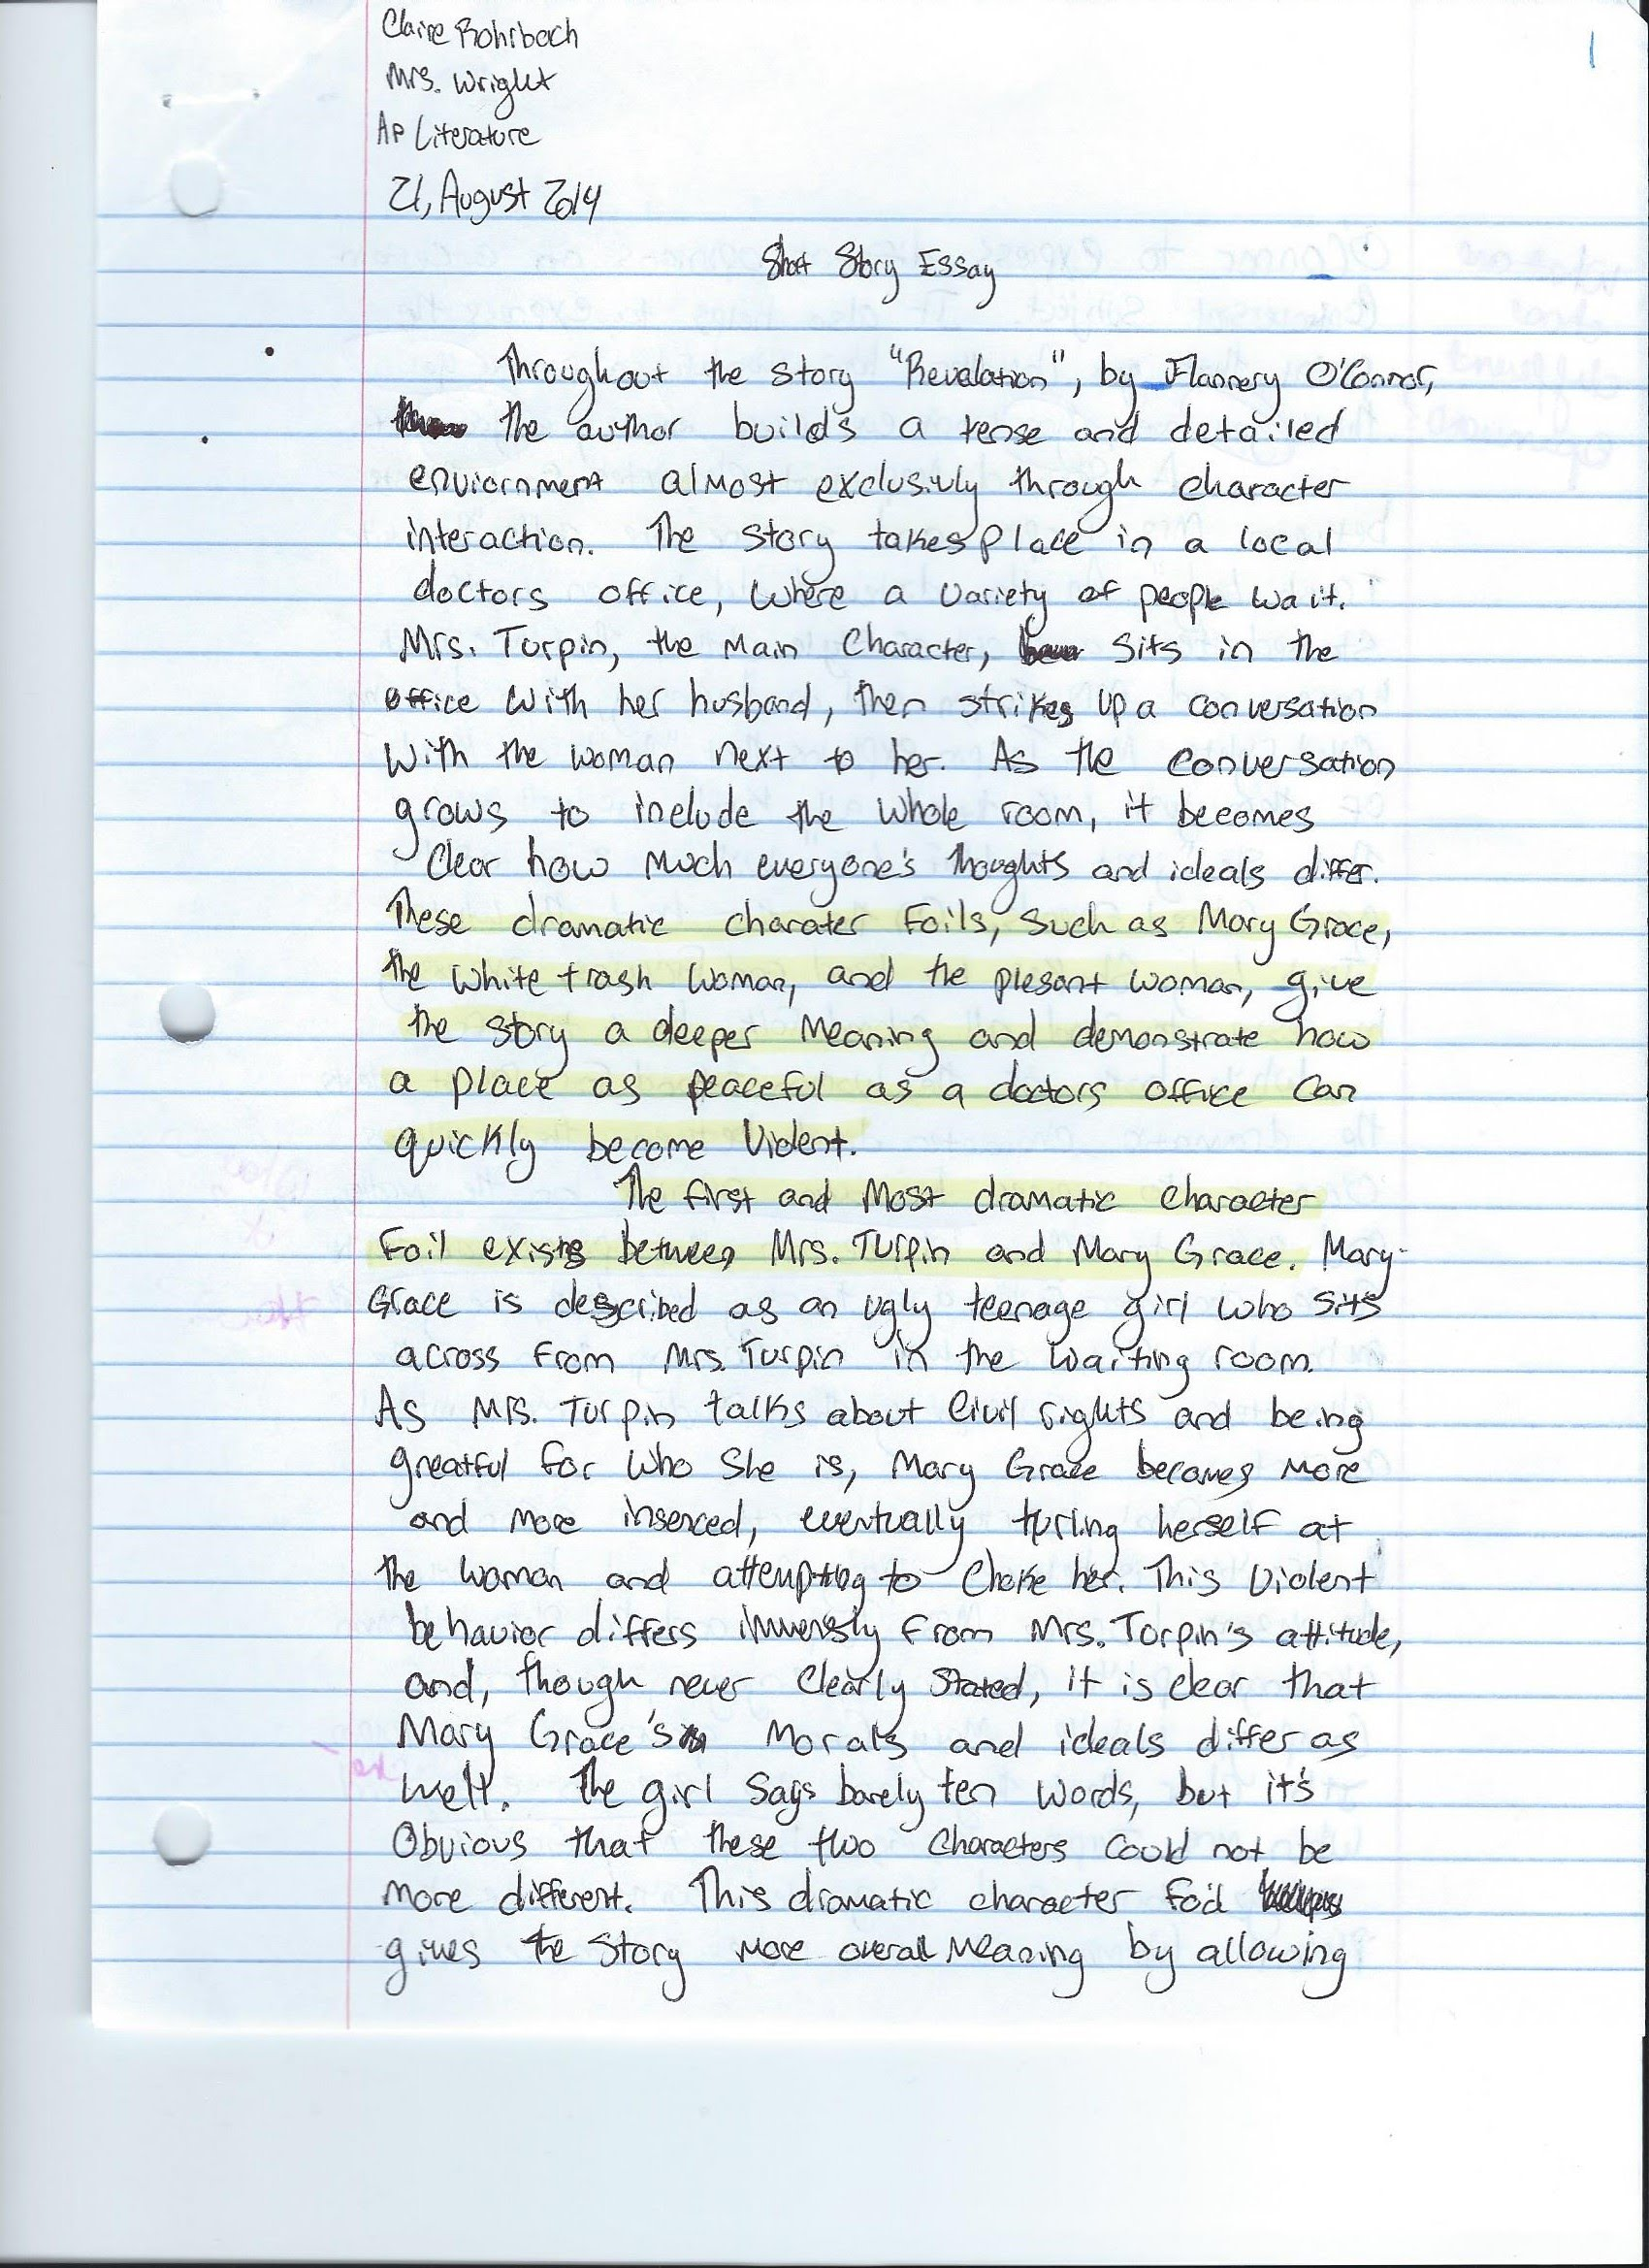 descriptive analysis of the essays and short stories On this page, we attempt to show you the skills our writers use to analyze a short story by using flannery o'connor's short story a good man is hard to find analyzing a short story here is an example, using flannery o'connor's a good man is hard to find, on how to go about analyzing a short story.